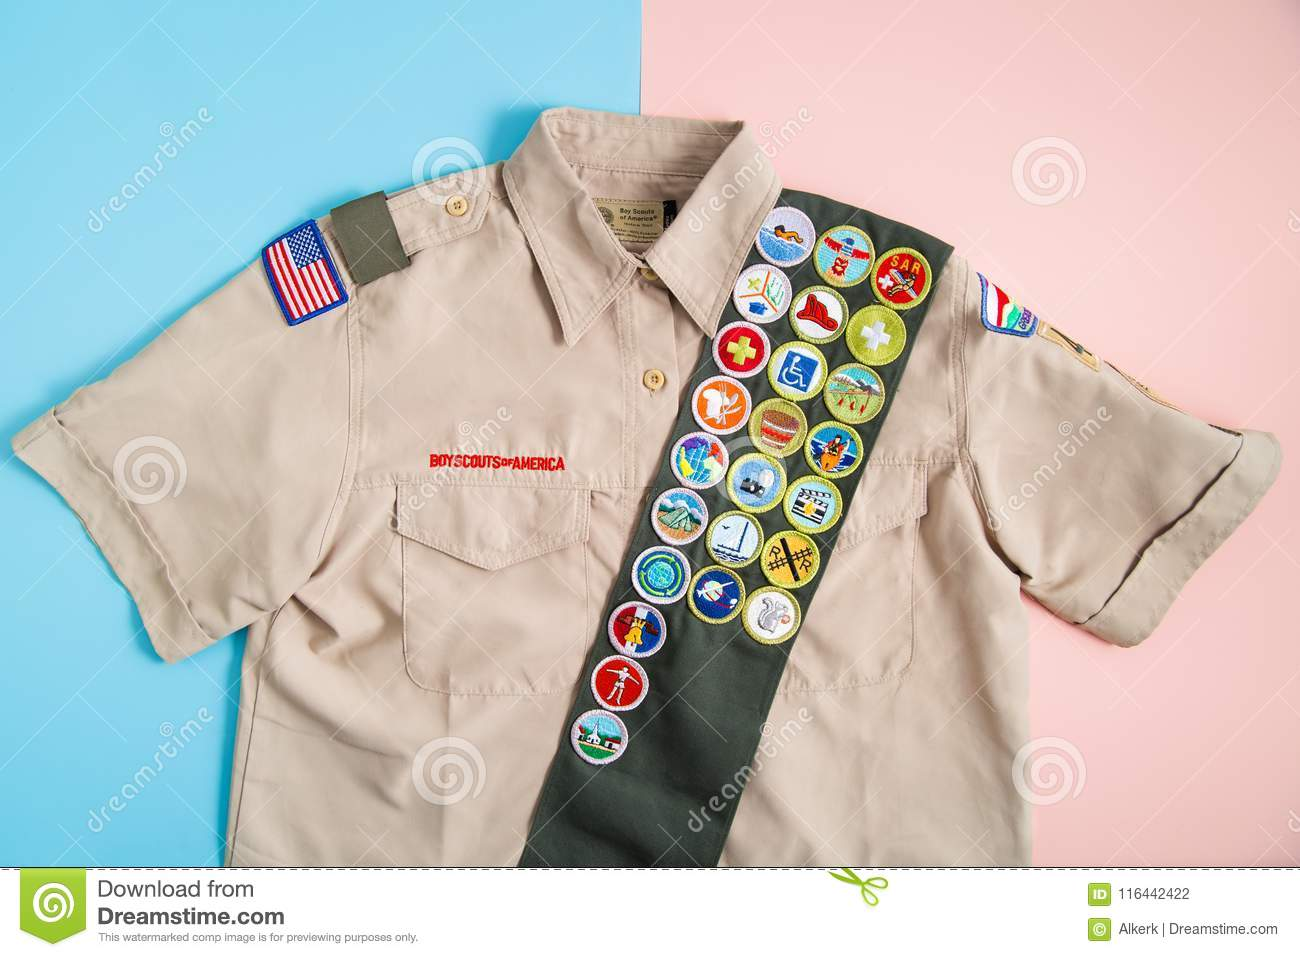 BSA Uniform On Pink And Blue Editorial Photography - Image of scouts